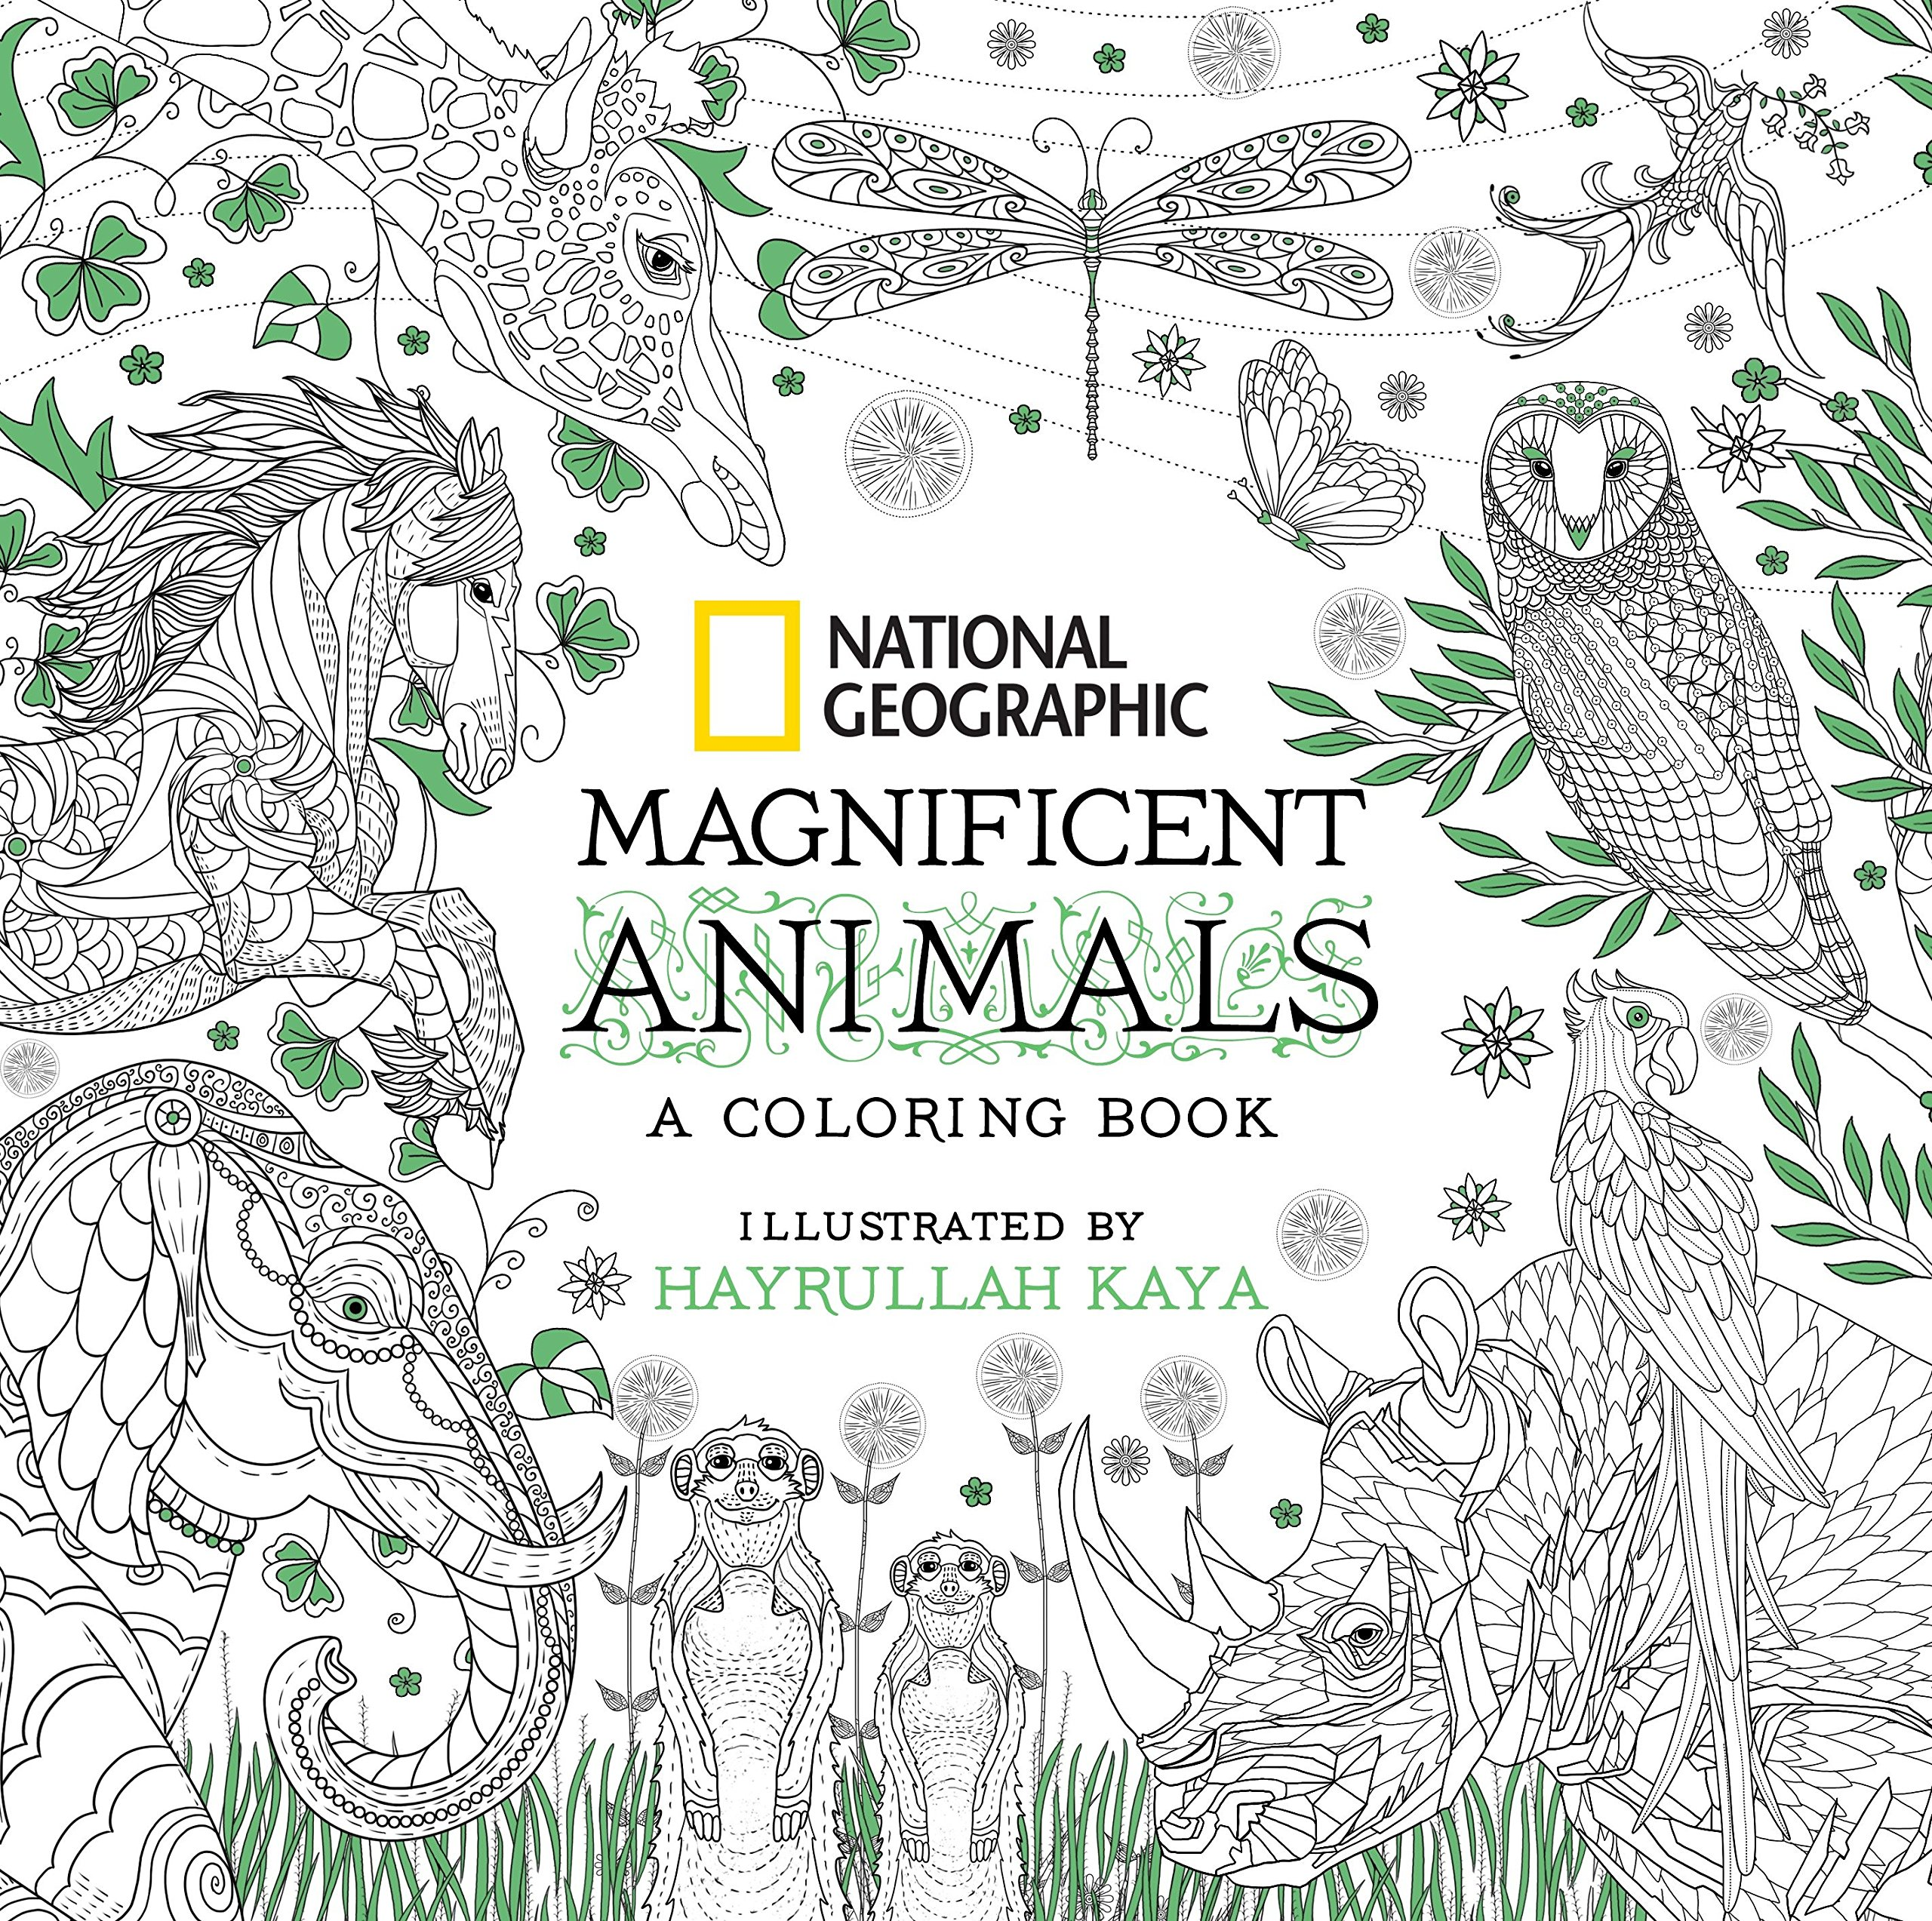 Amazon.com: National Geographic Magnificent Animals: A Coloring Book ...